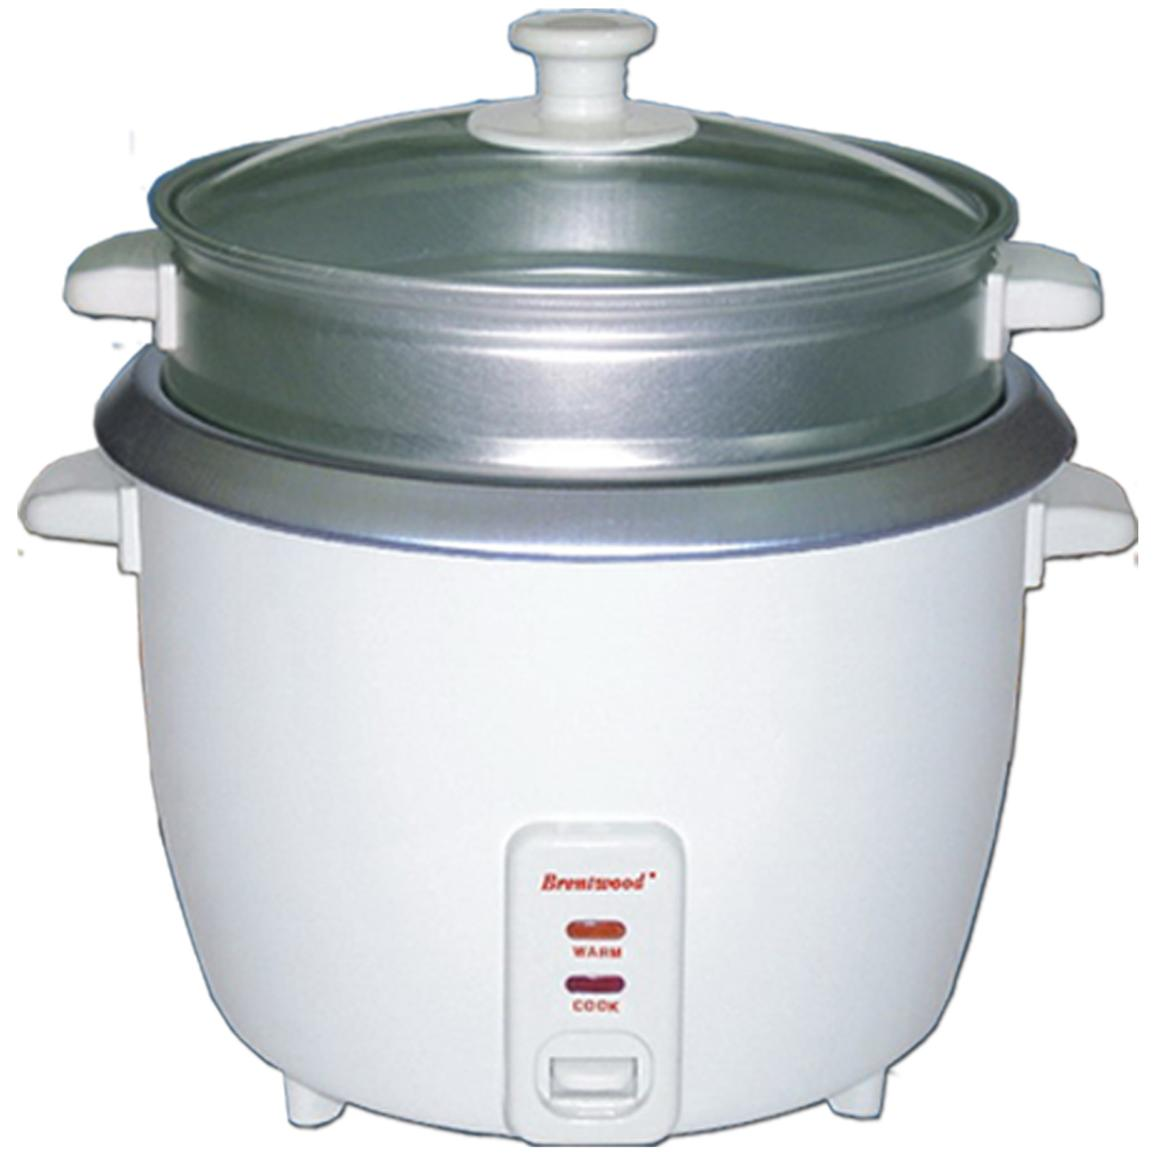 10-cup Rice Cooker with Steamer